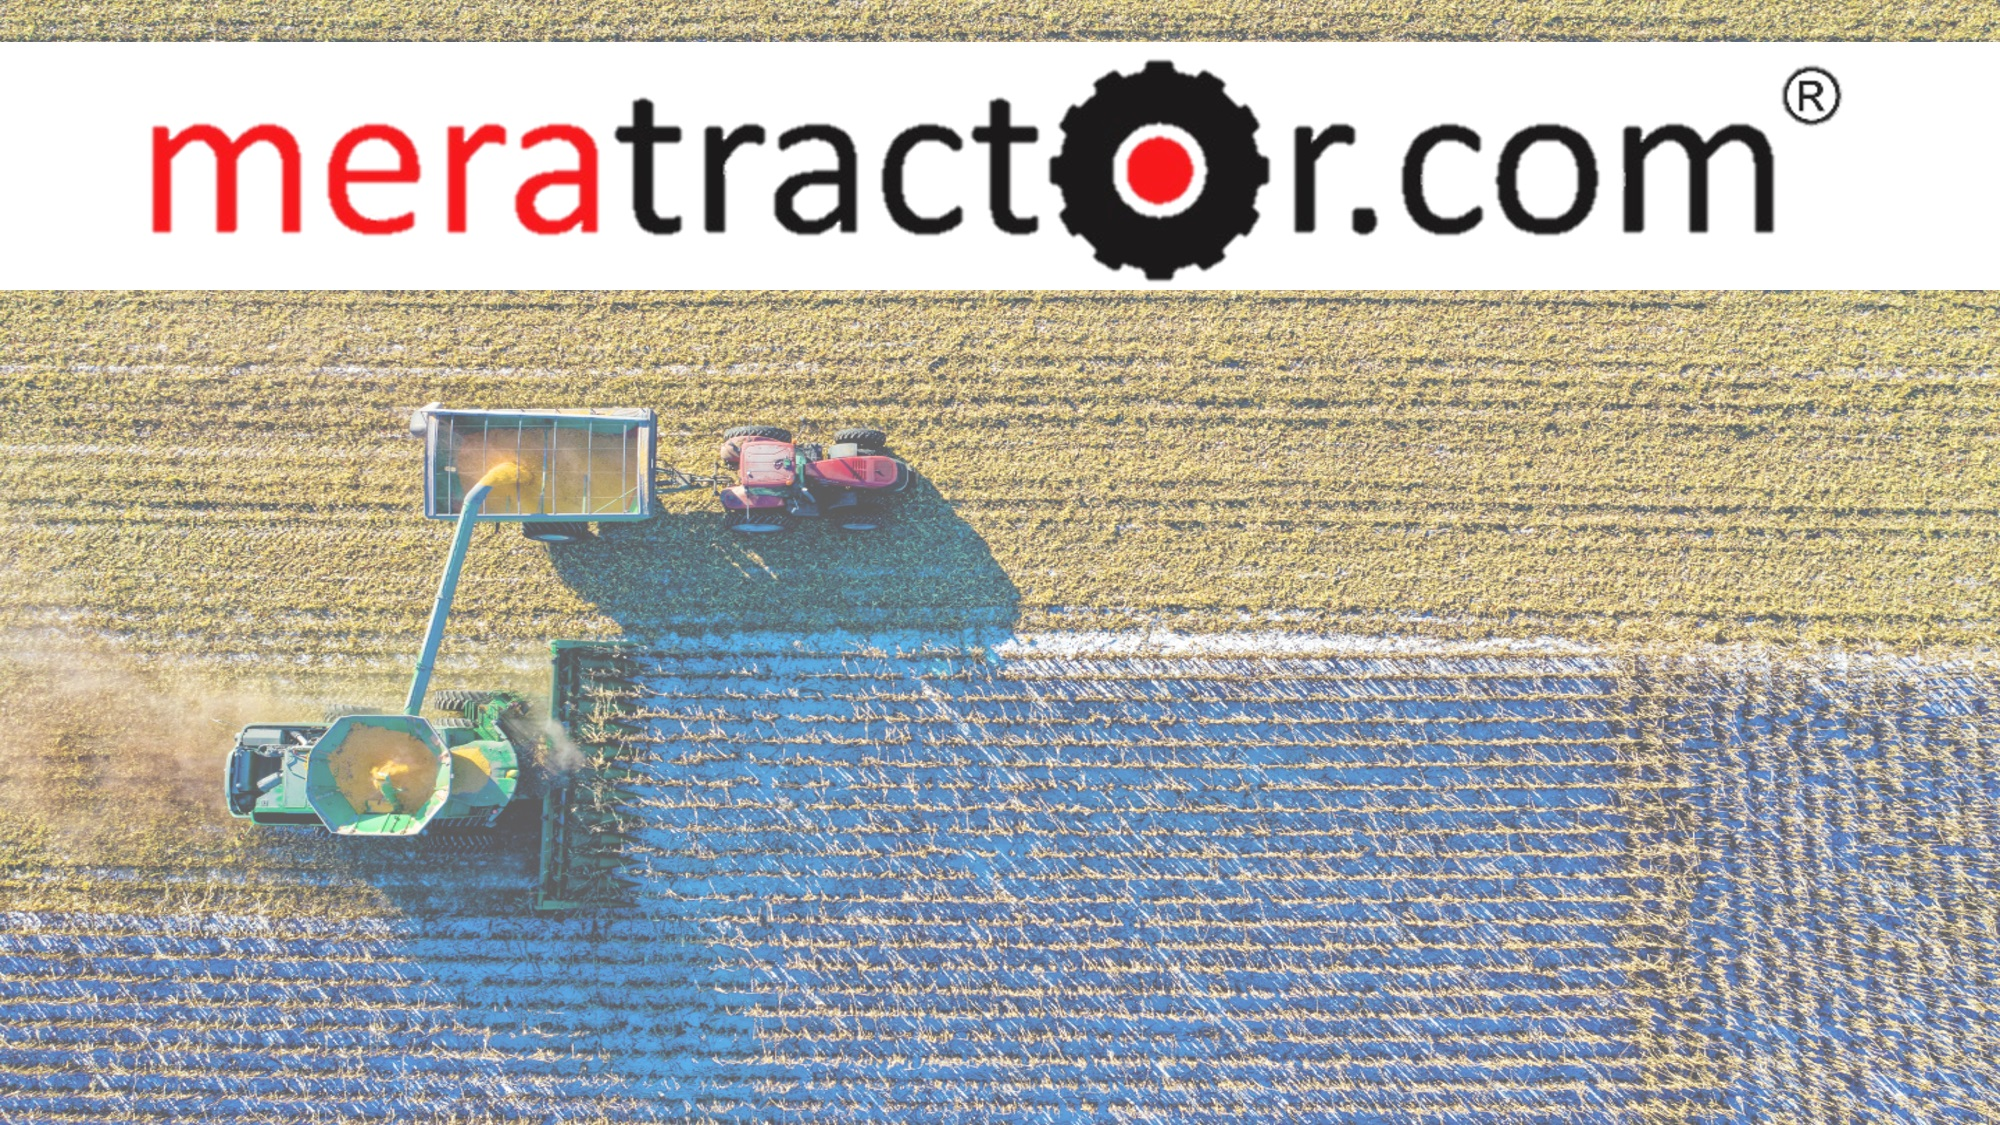 A one-stop solution for all of your agri-related needs will now be made available by this start-up